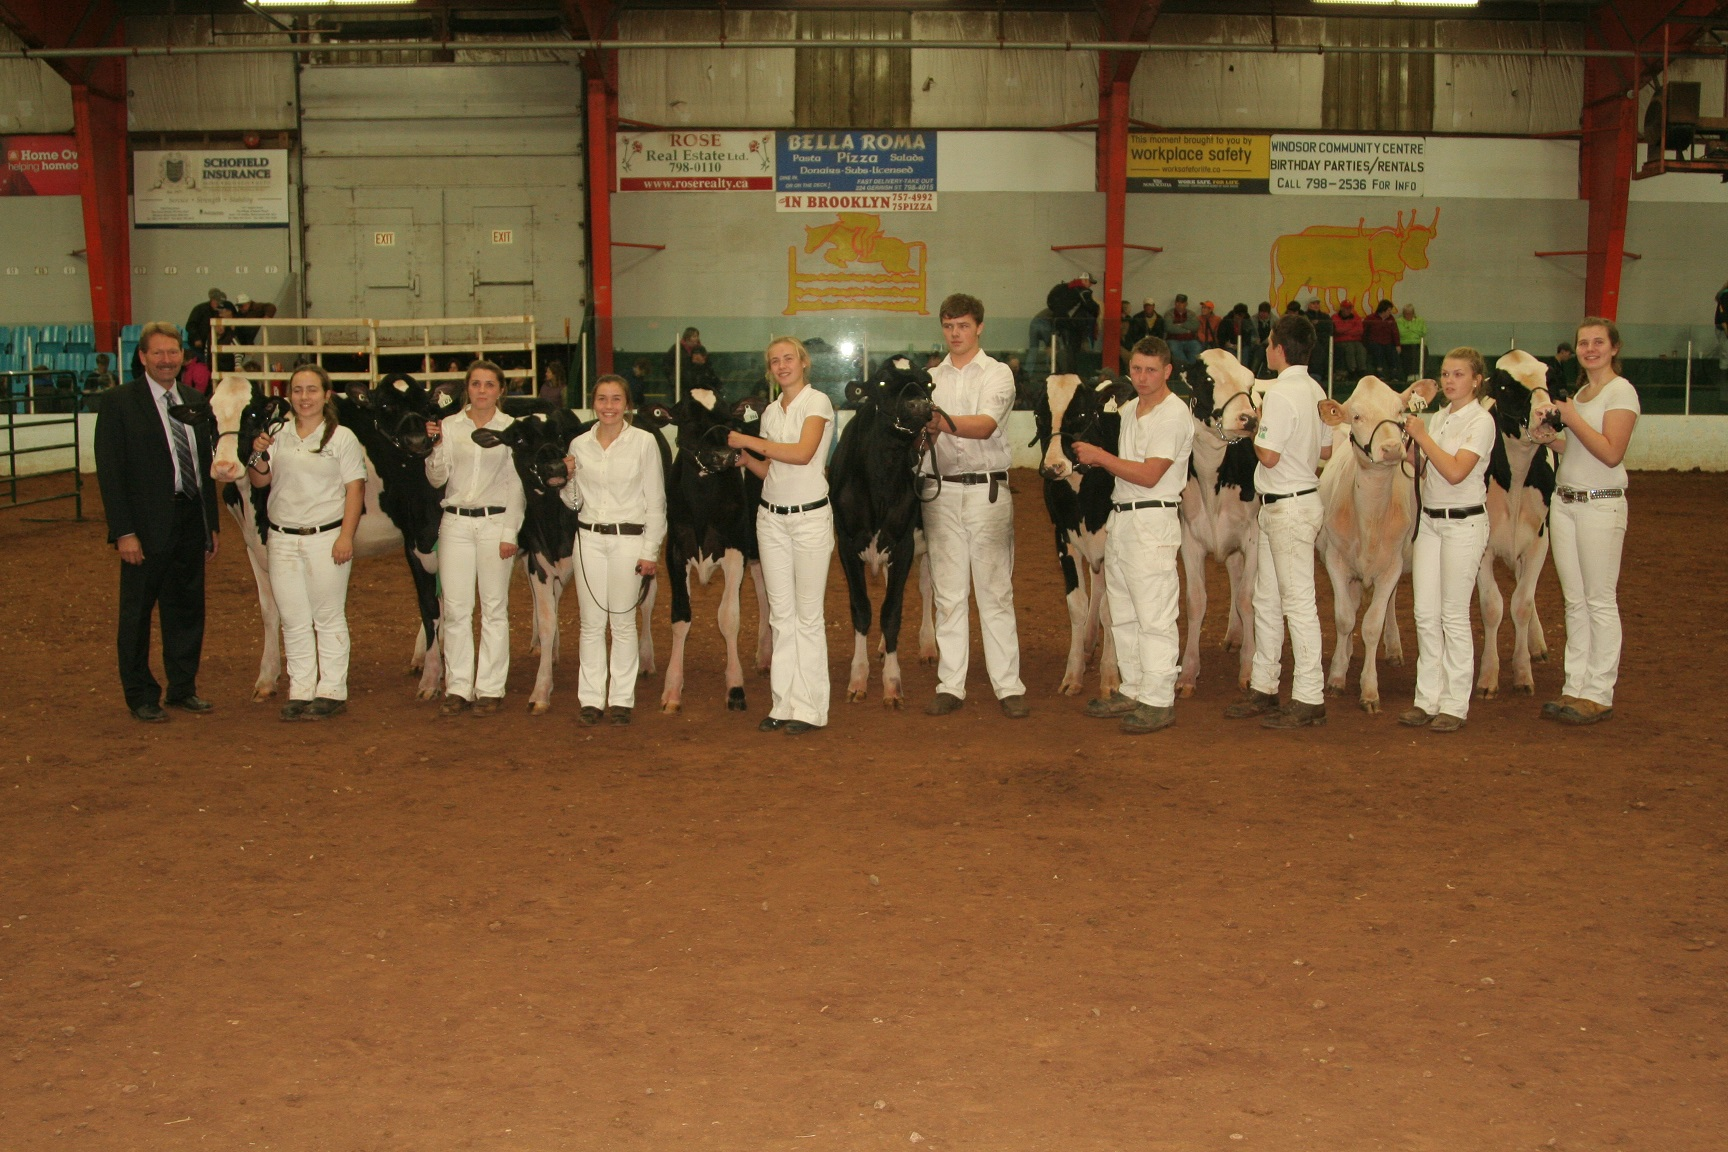 From the left Judge Neil Kittle 1st - Taylor Masters (Colchester) 2nd - Hayley Wilson (Inverness) 3rd - Sarah Wilson (Inverness) 4th - Lane Yuill (Colchester) 5th - Cole Yuill (Colchester) 6th - Albert Ellis (Halifax/East Hants) 7th - Riley Masters (Colchester) 8th - Lesley Anderson (Halifax/East Hants) 9th - Charlea Lowe (Colchester)